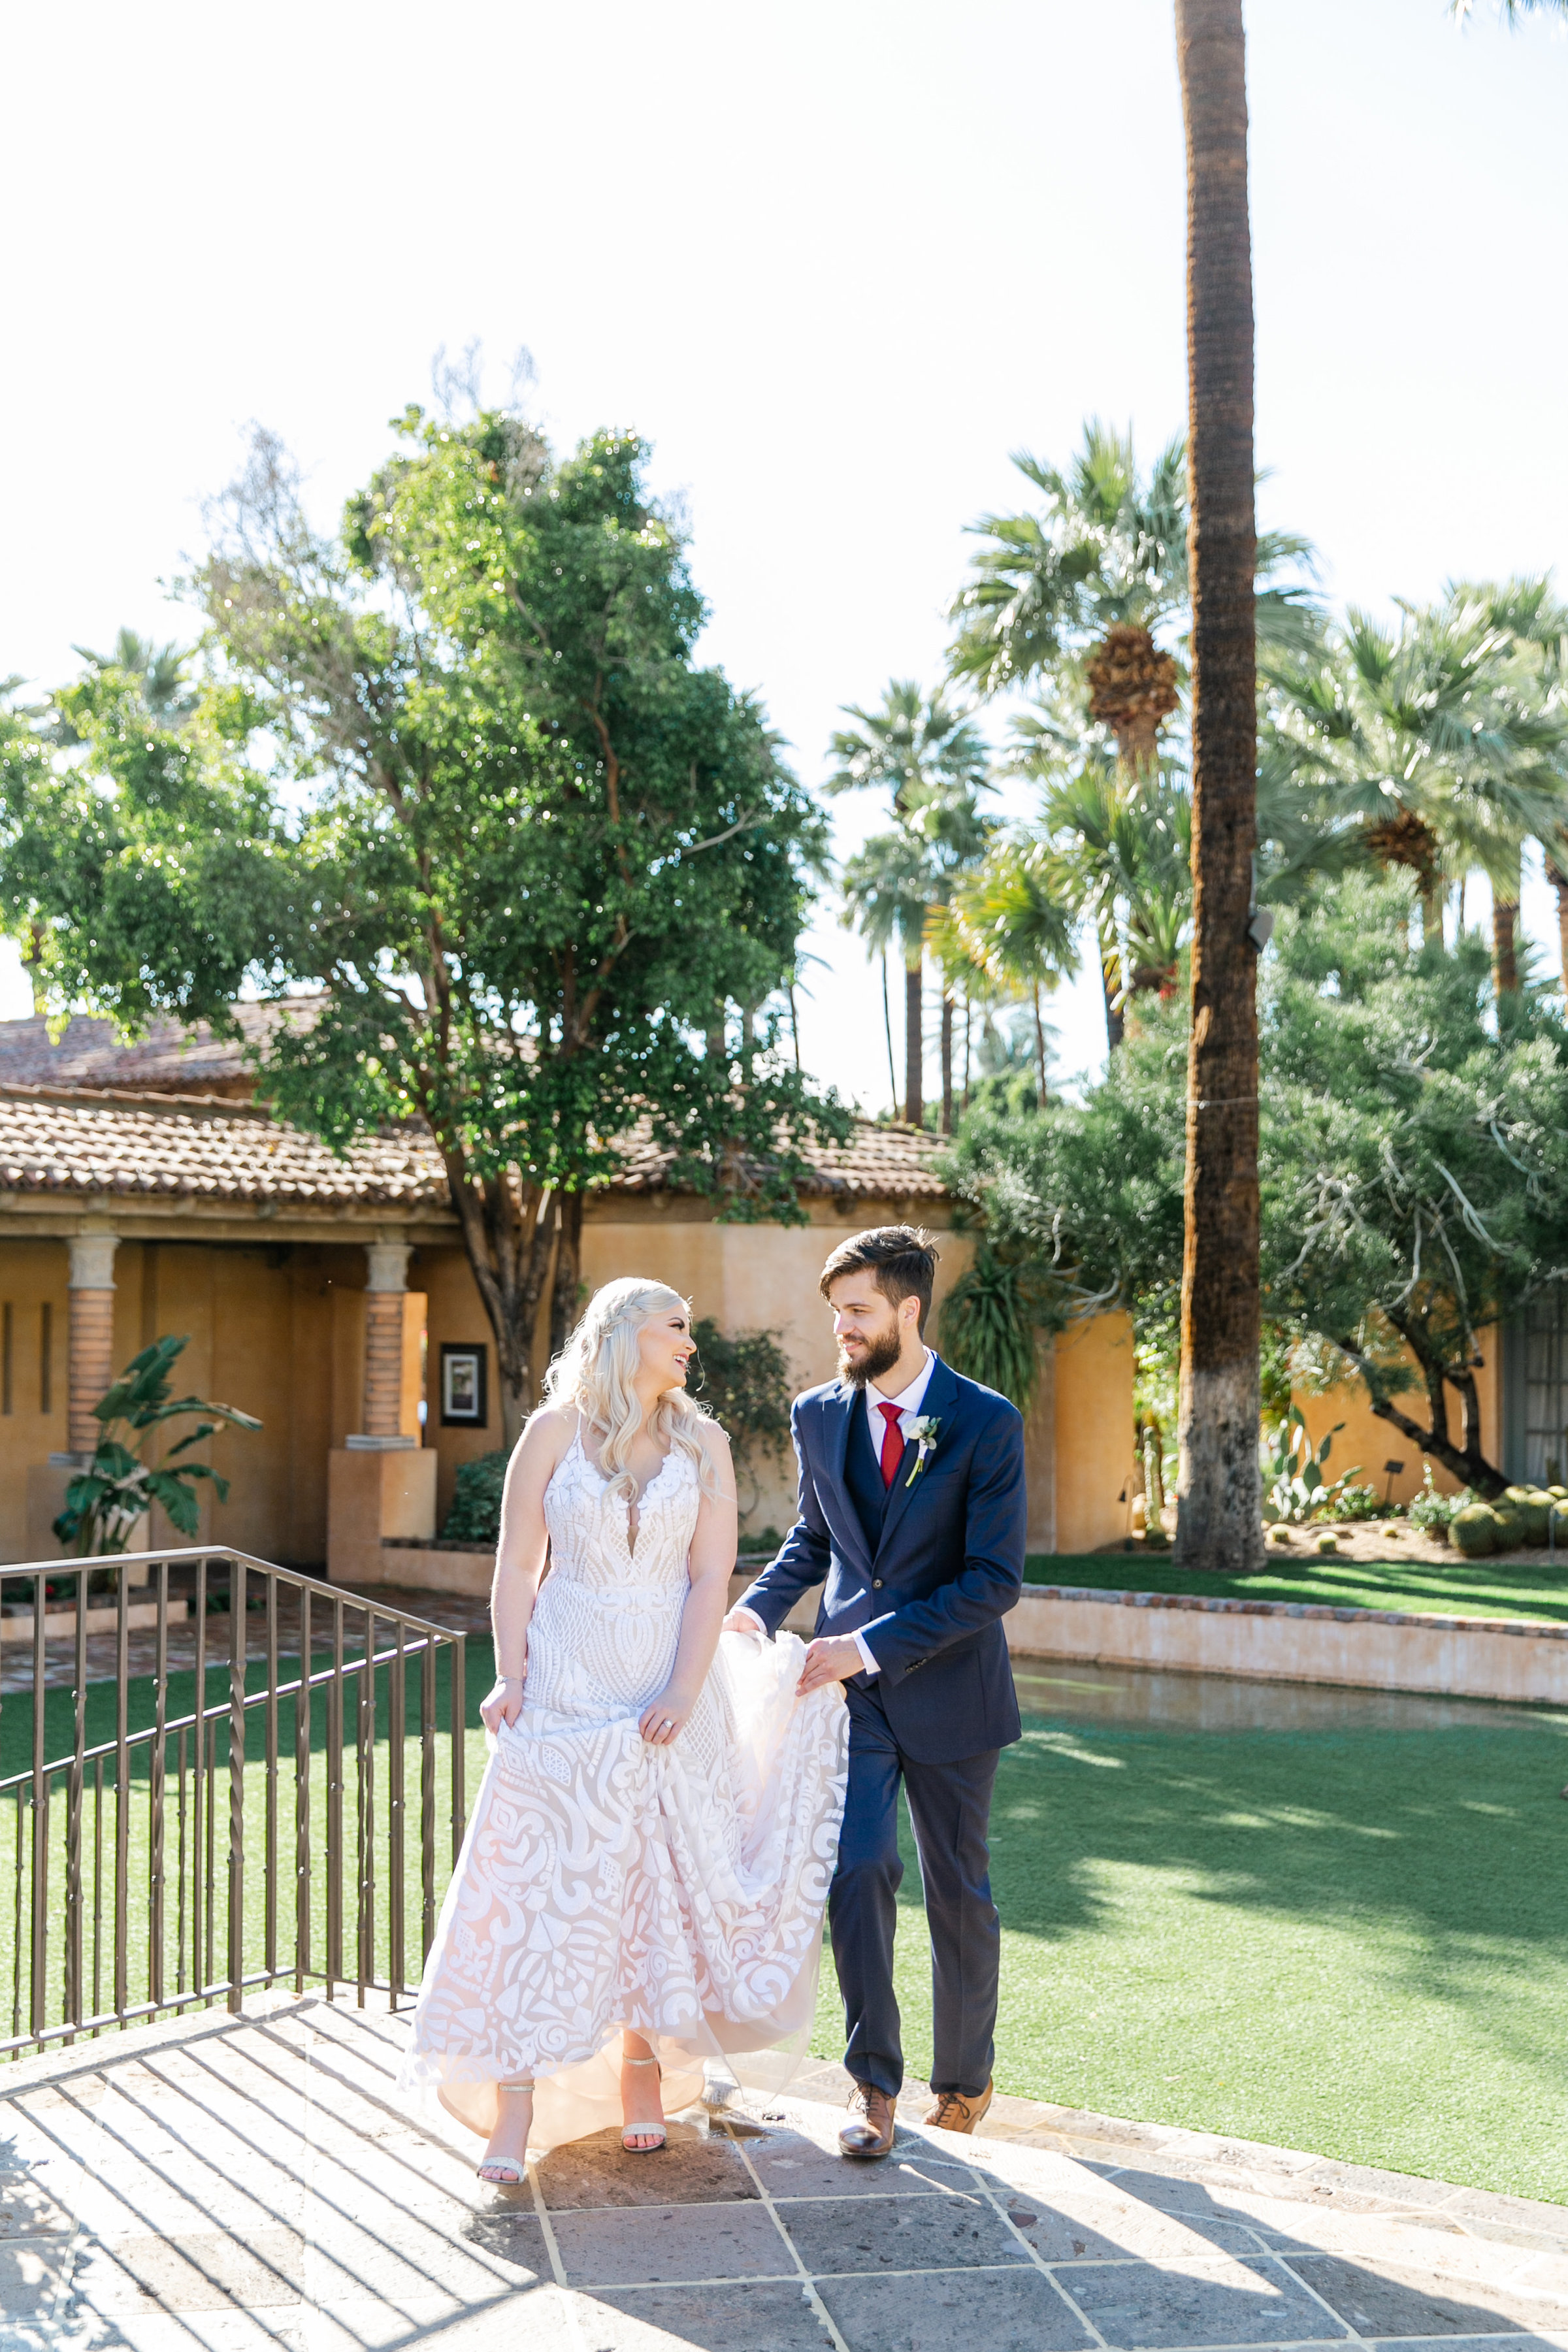 Karlie Colleen Photography - The Royal Palms Wedding - Some Like It Classic - Alex & Sam-179